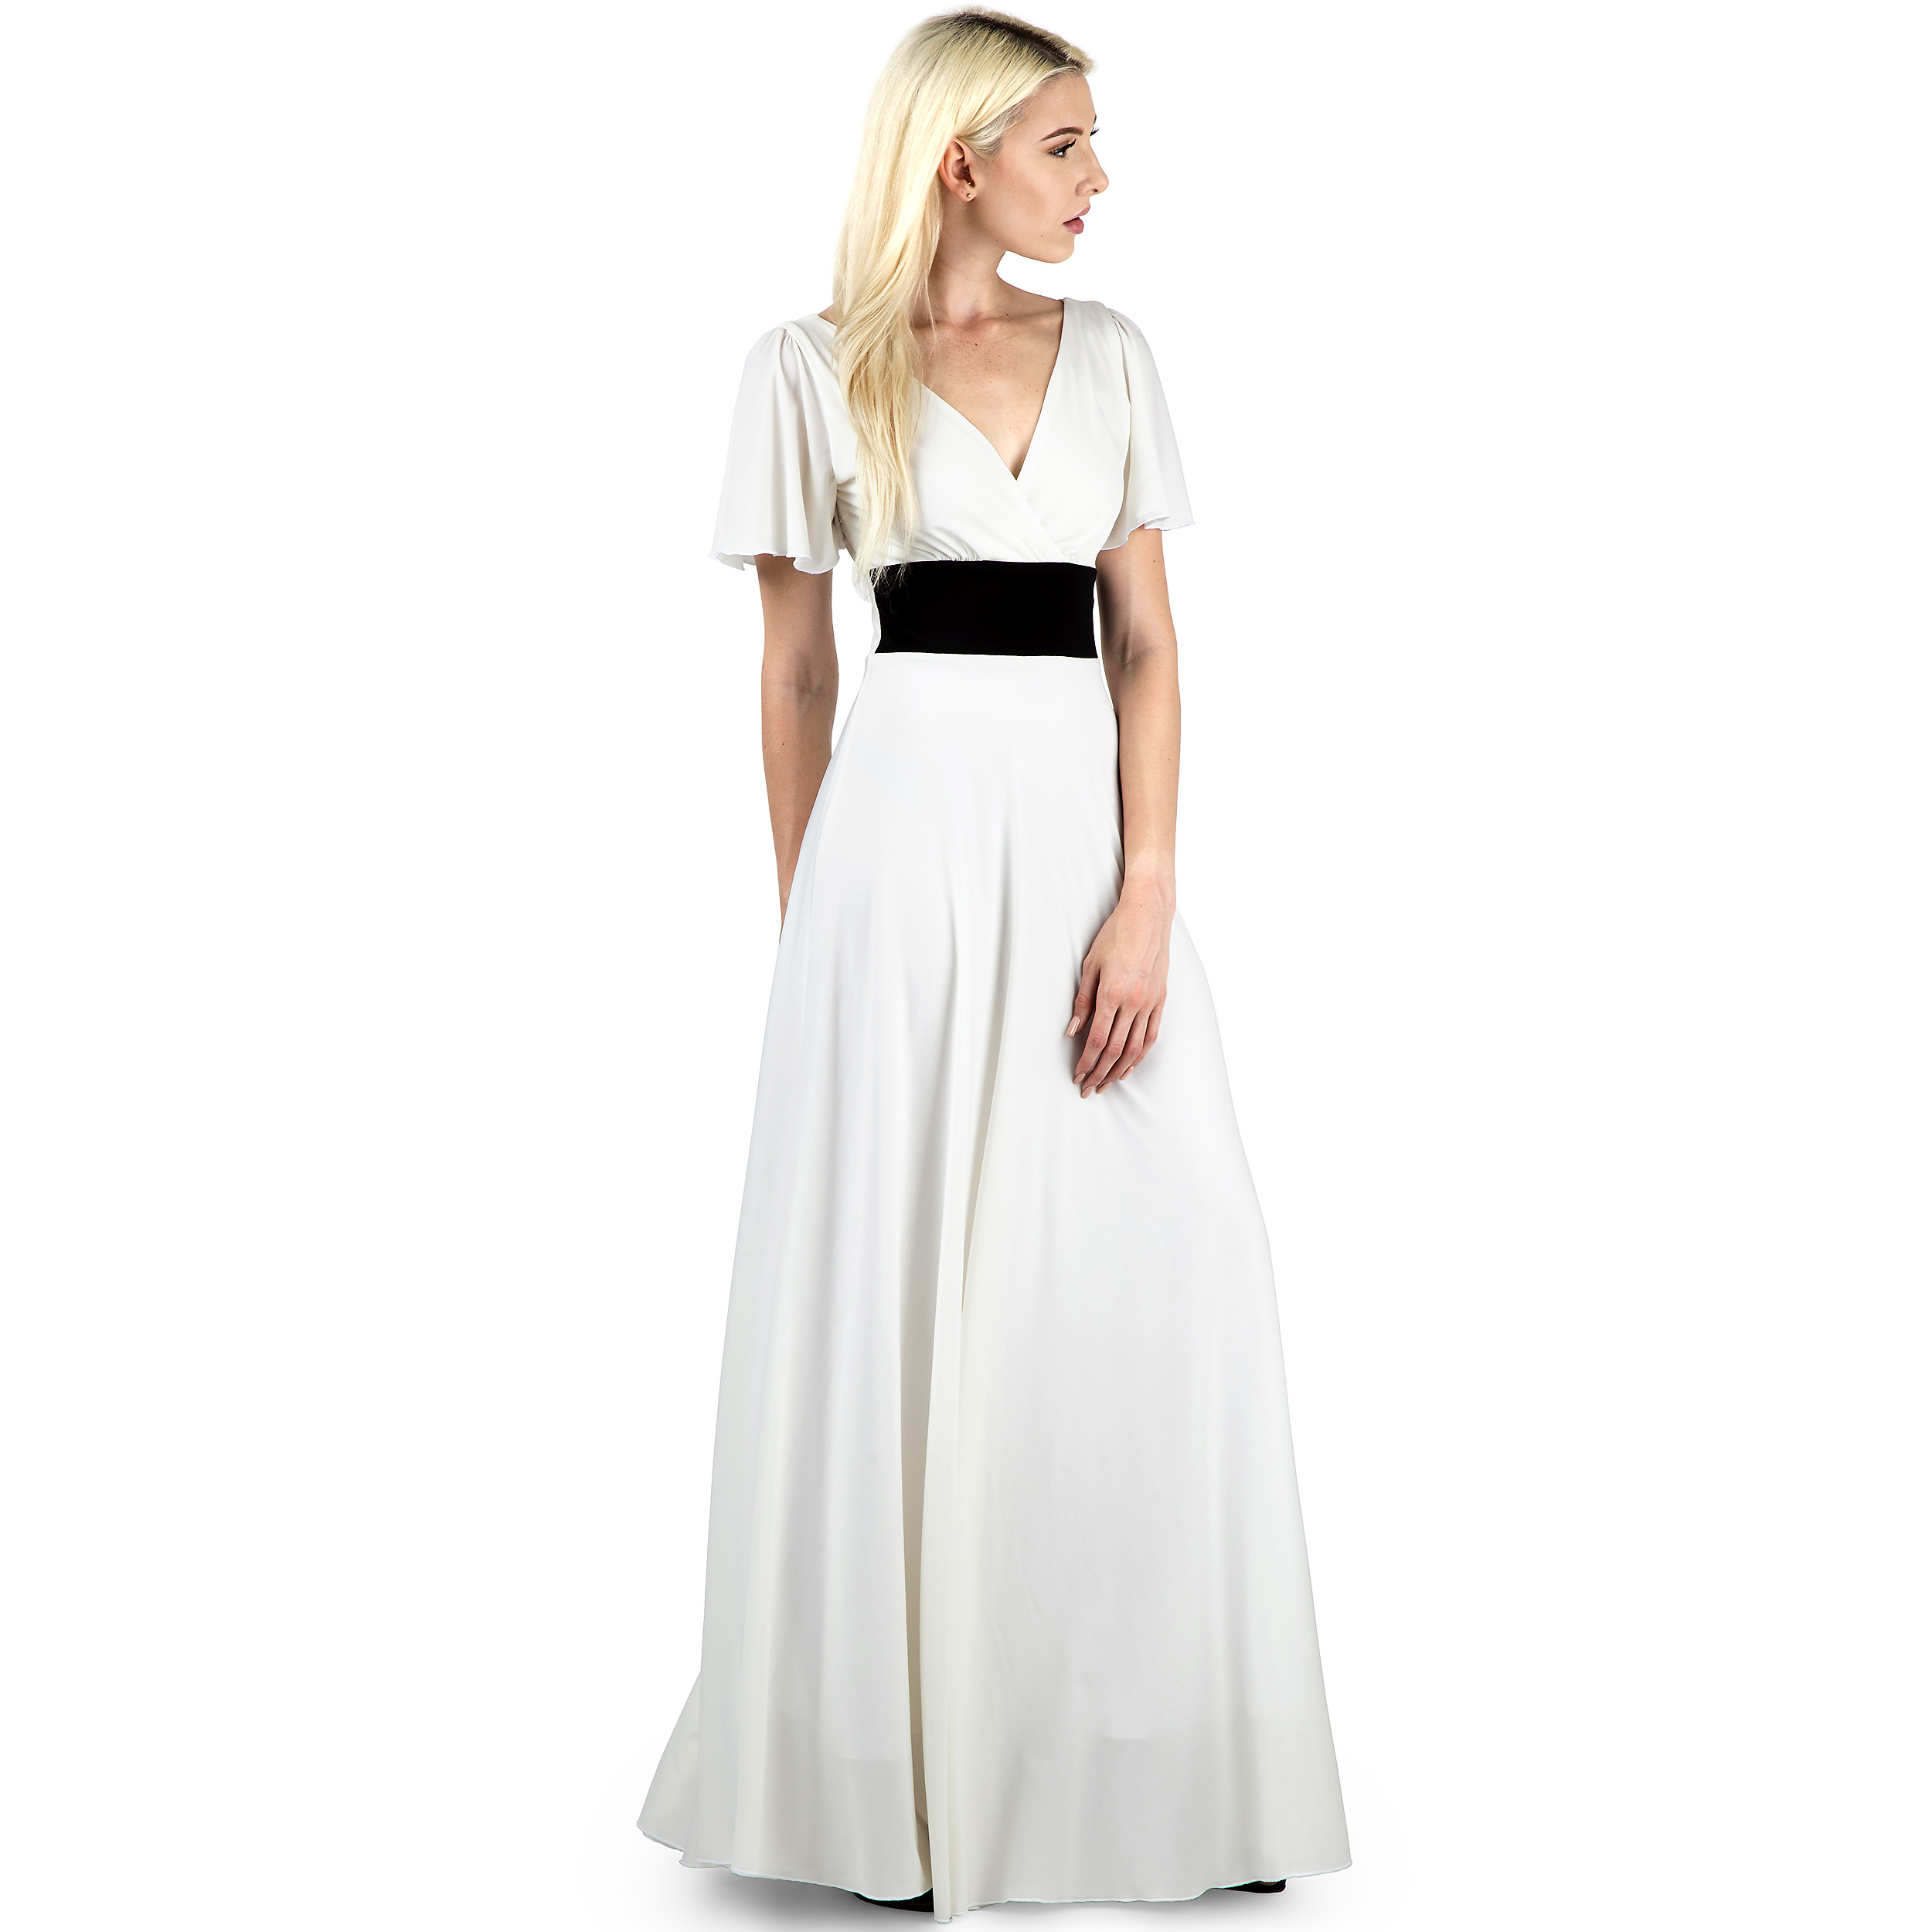 9cc5b8097a6f Evanese Women's Elegant Slip on Short Sleeves Evening Party Formal Long  Dress - D7510, Creme/Black